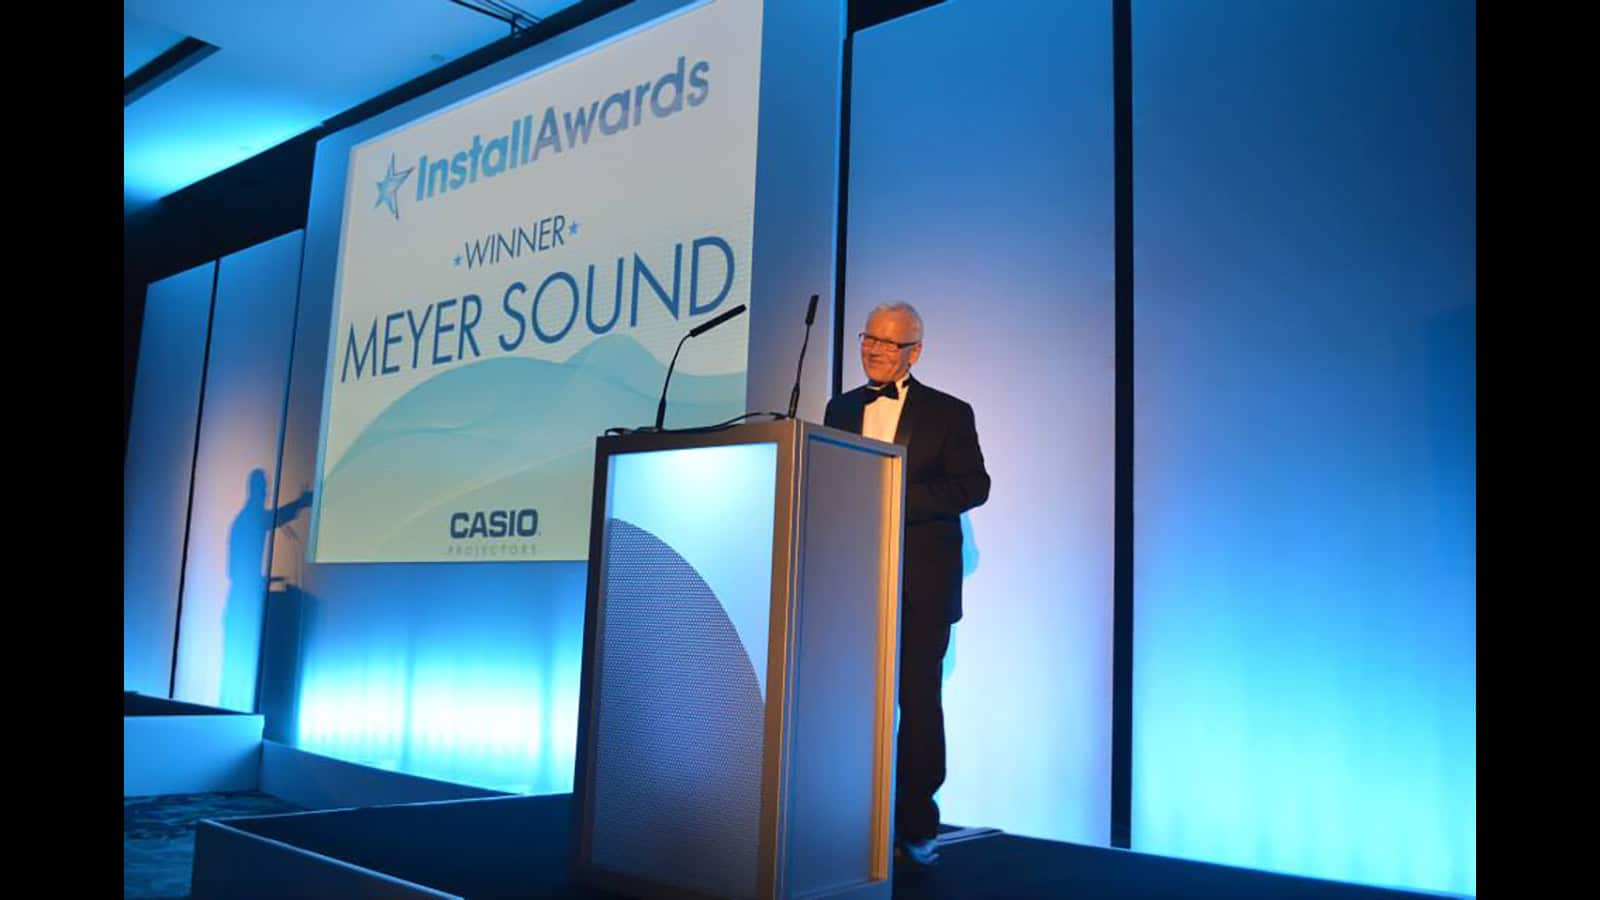 John Pellowe, Constellation project director for Meyer Sound, accepts the Teamwork Award for the Exploratorium